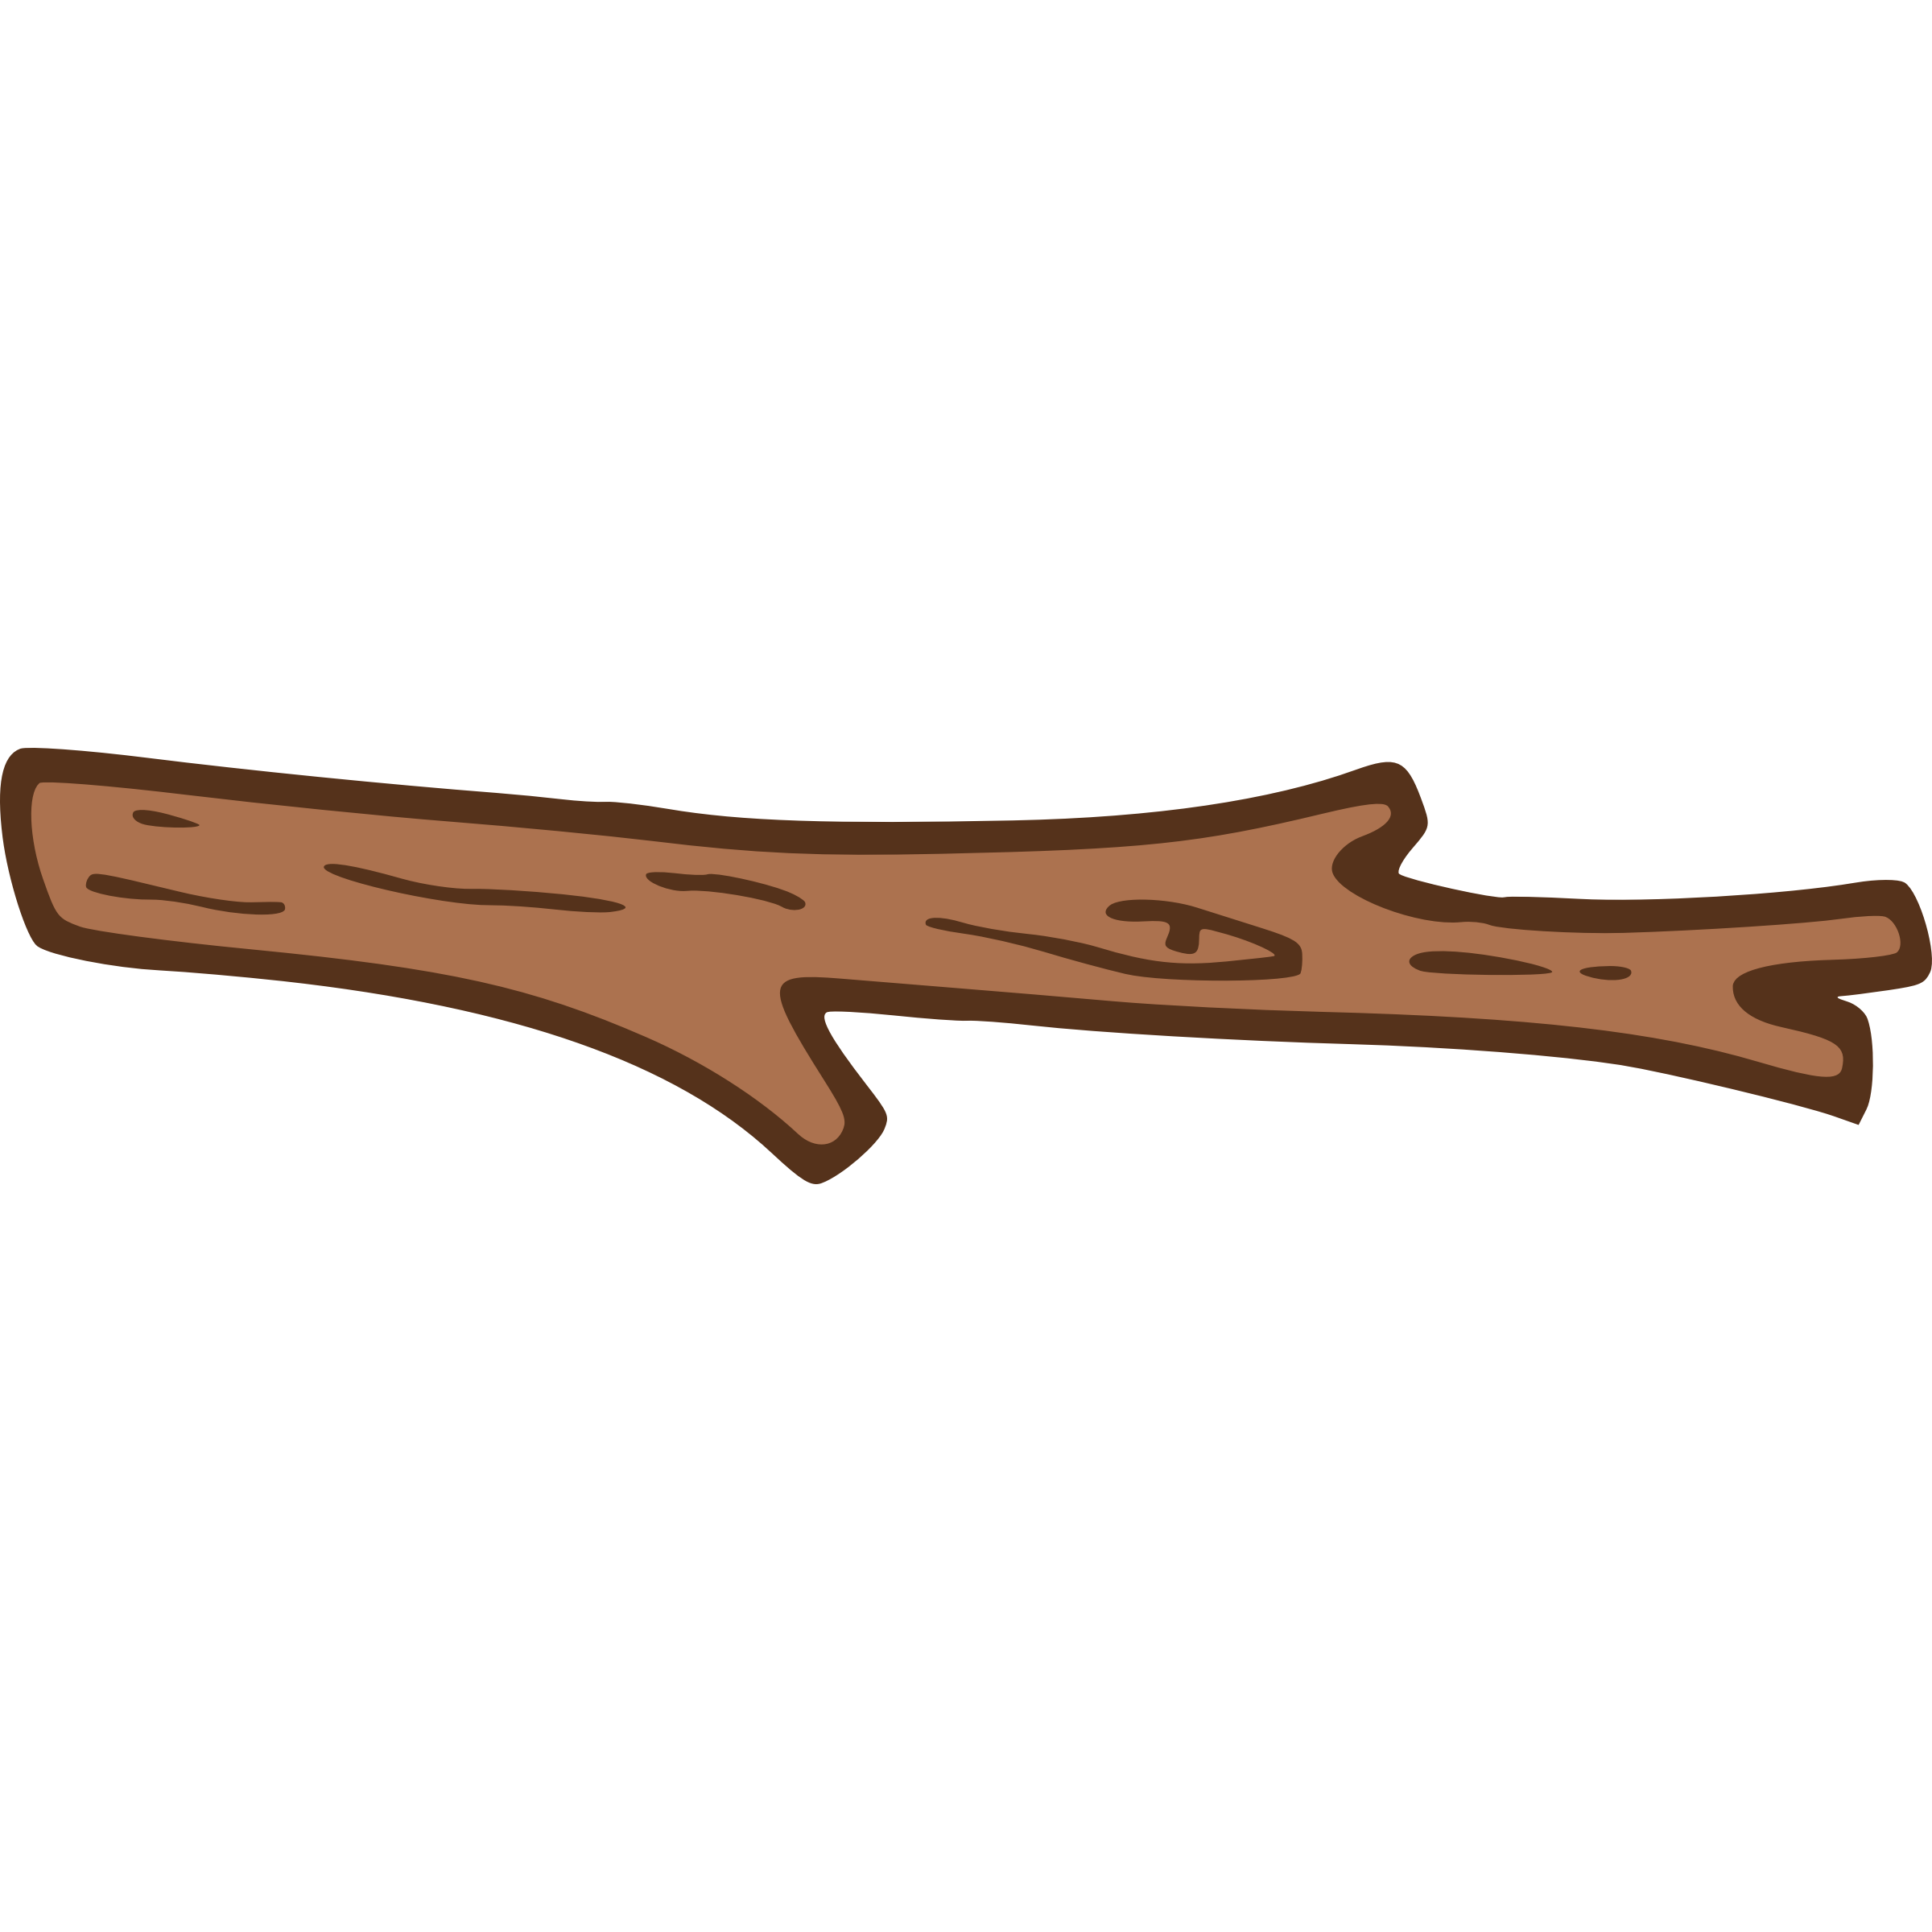 clipart royalty free stock  collection of png. Woods clipart wooden stick